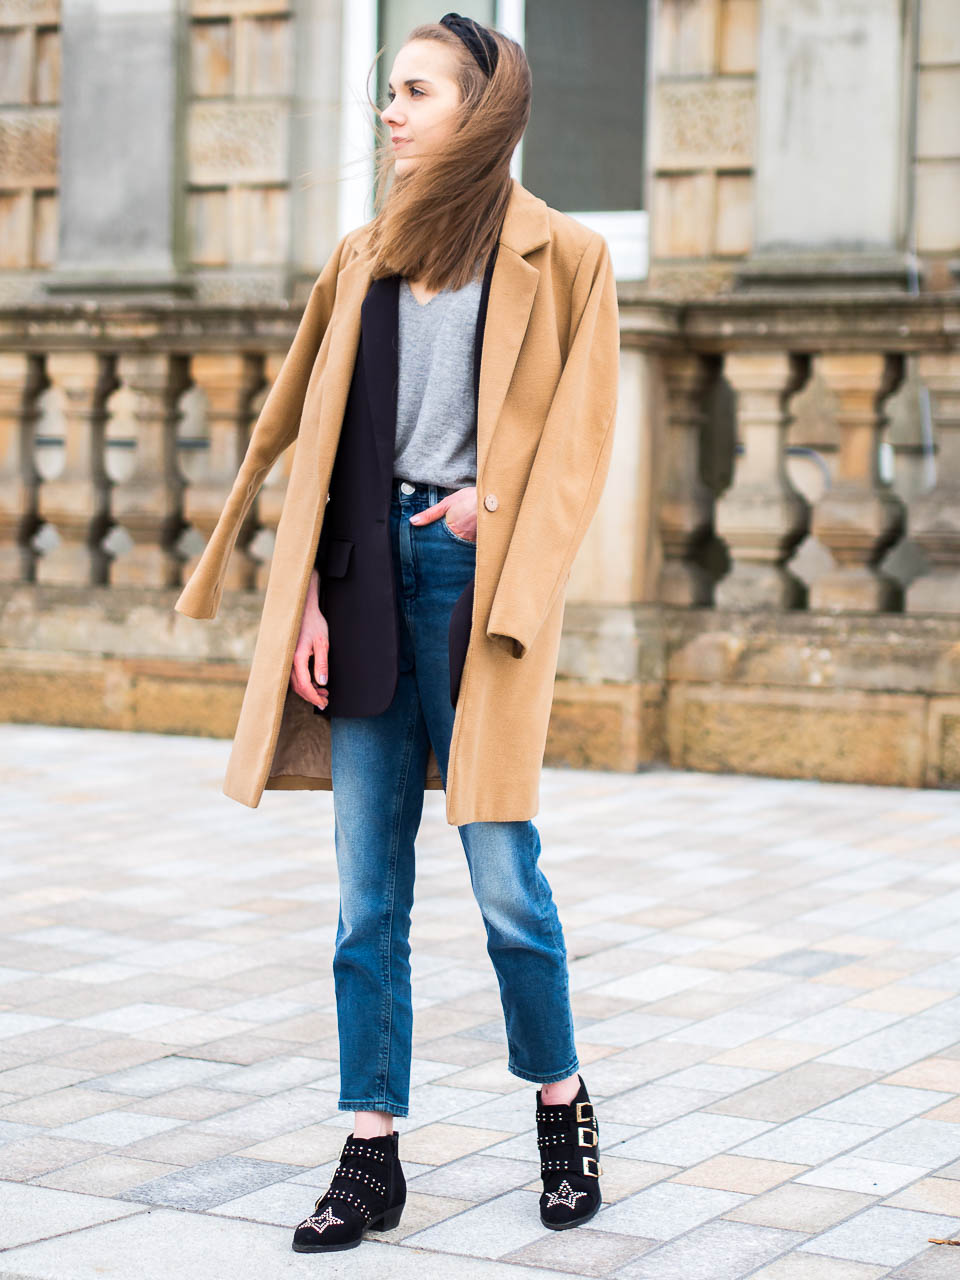 fashion-blogger-inspiration-camel-coat-headband